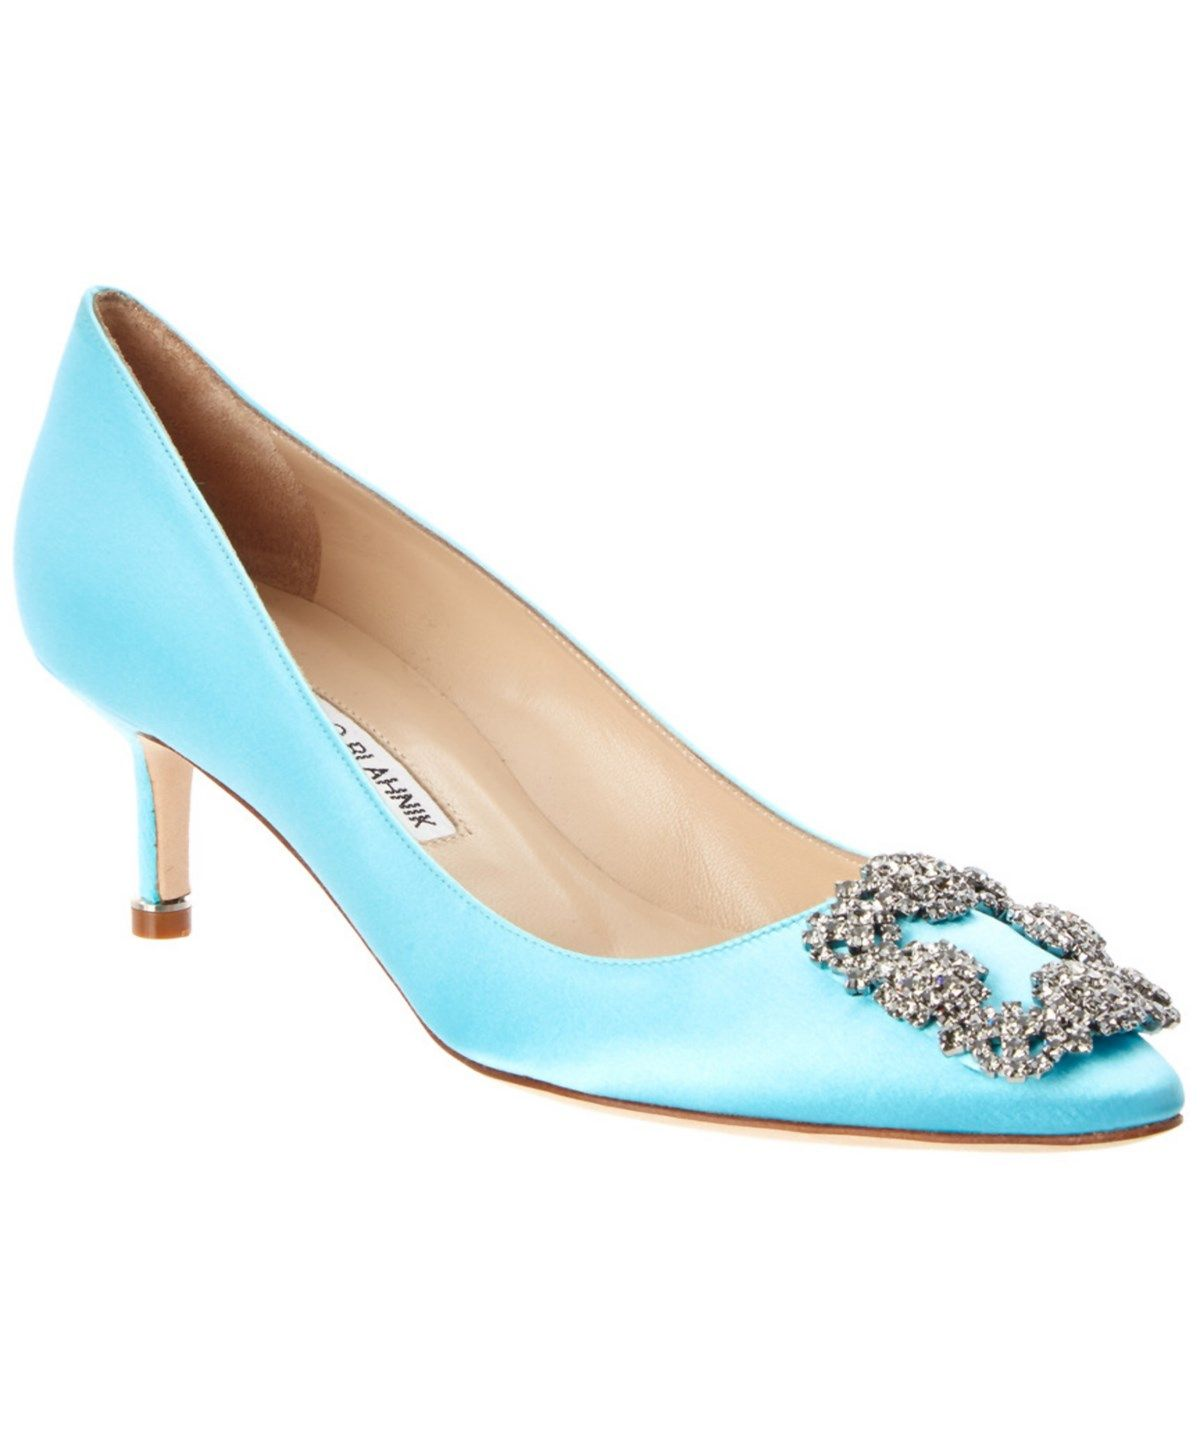 a516c40eaf44 MANOLO BLAHNIK Manolo Blahnik Hangisi 50Mm Satin Pump .  manoloblahnik   shoes  pumps   high heels